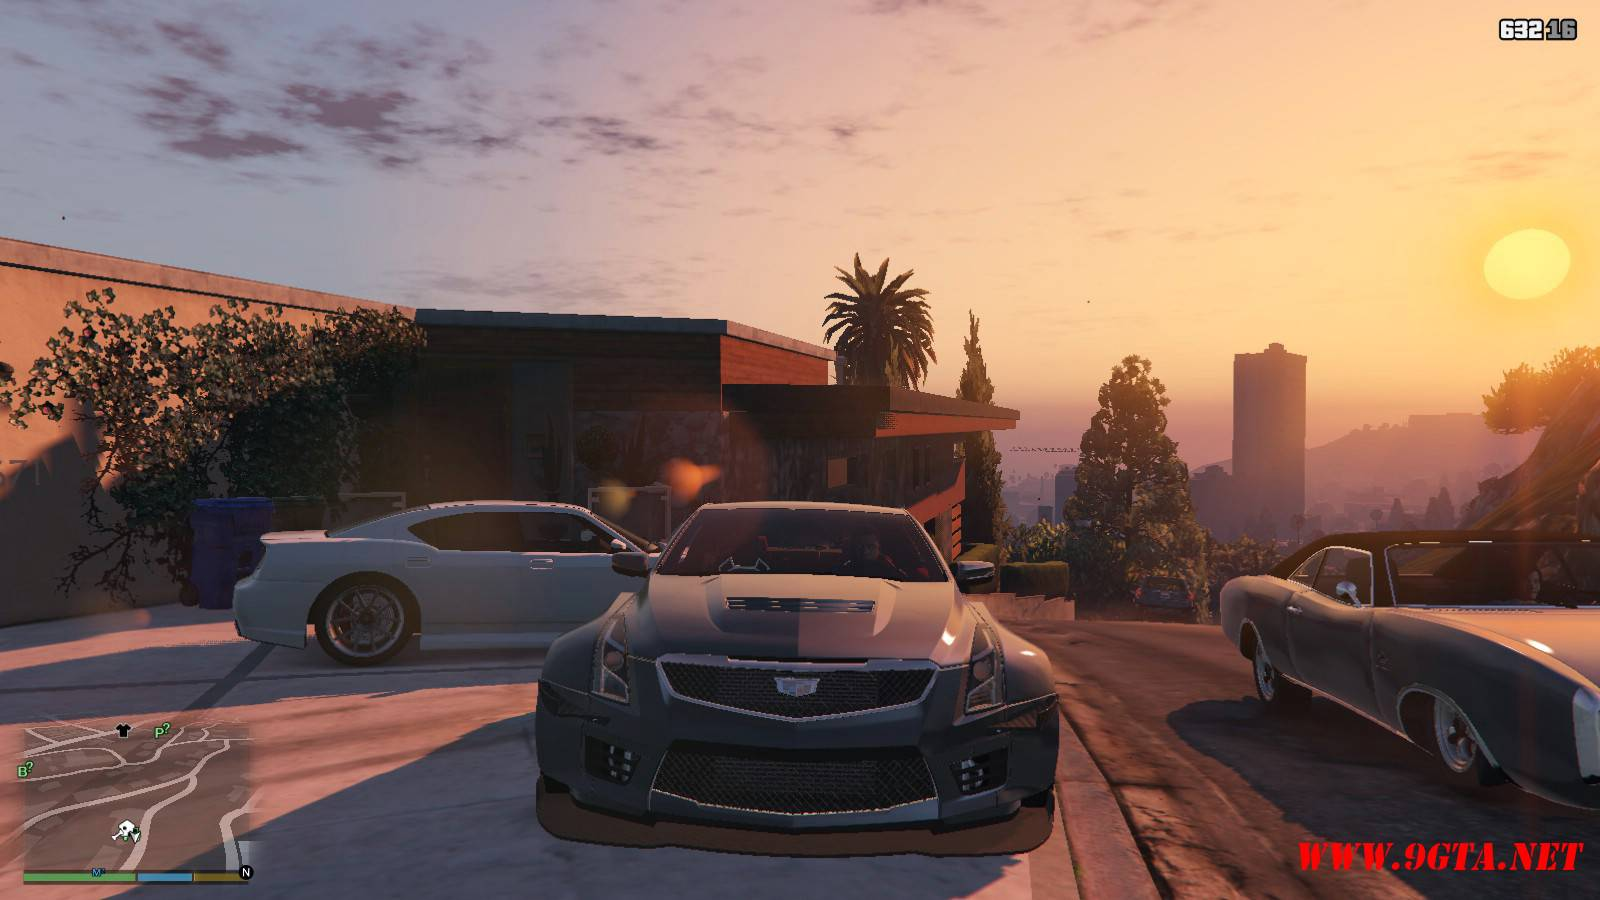 2016 Cadillac ATS-V Forza Edition Mod For GTA5 (11)